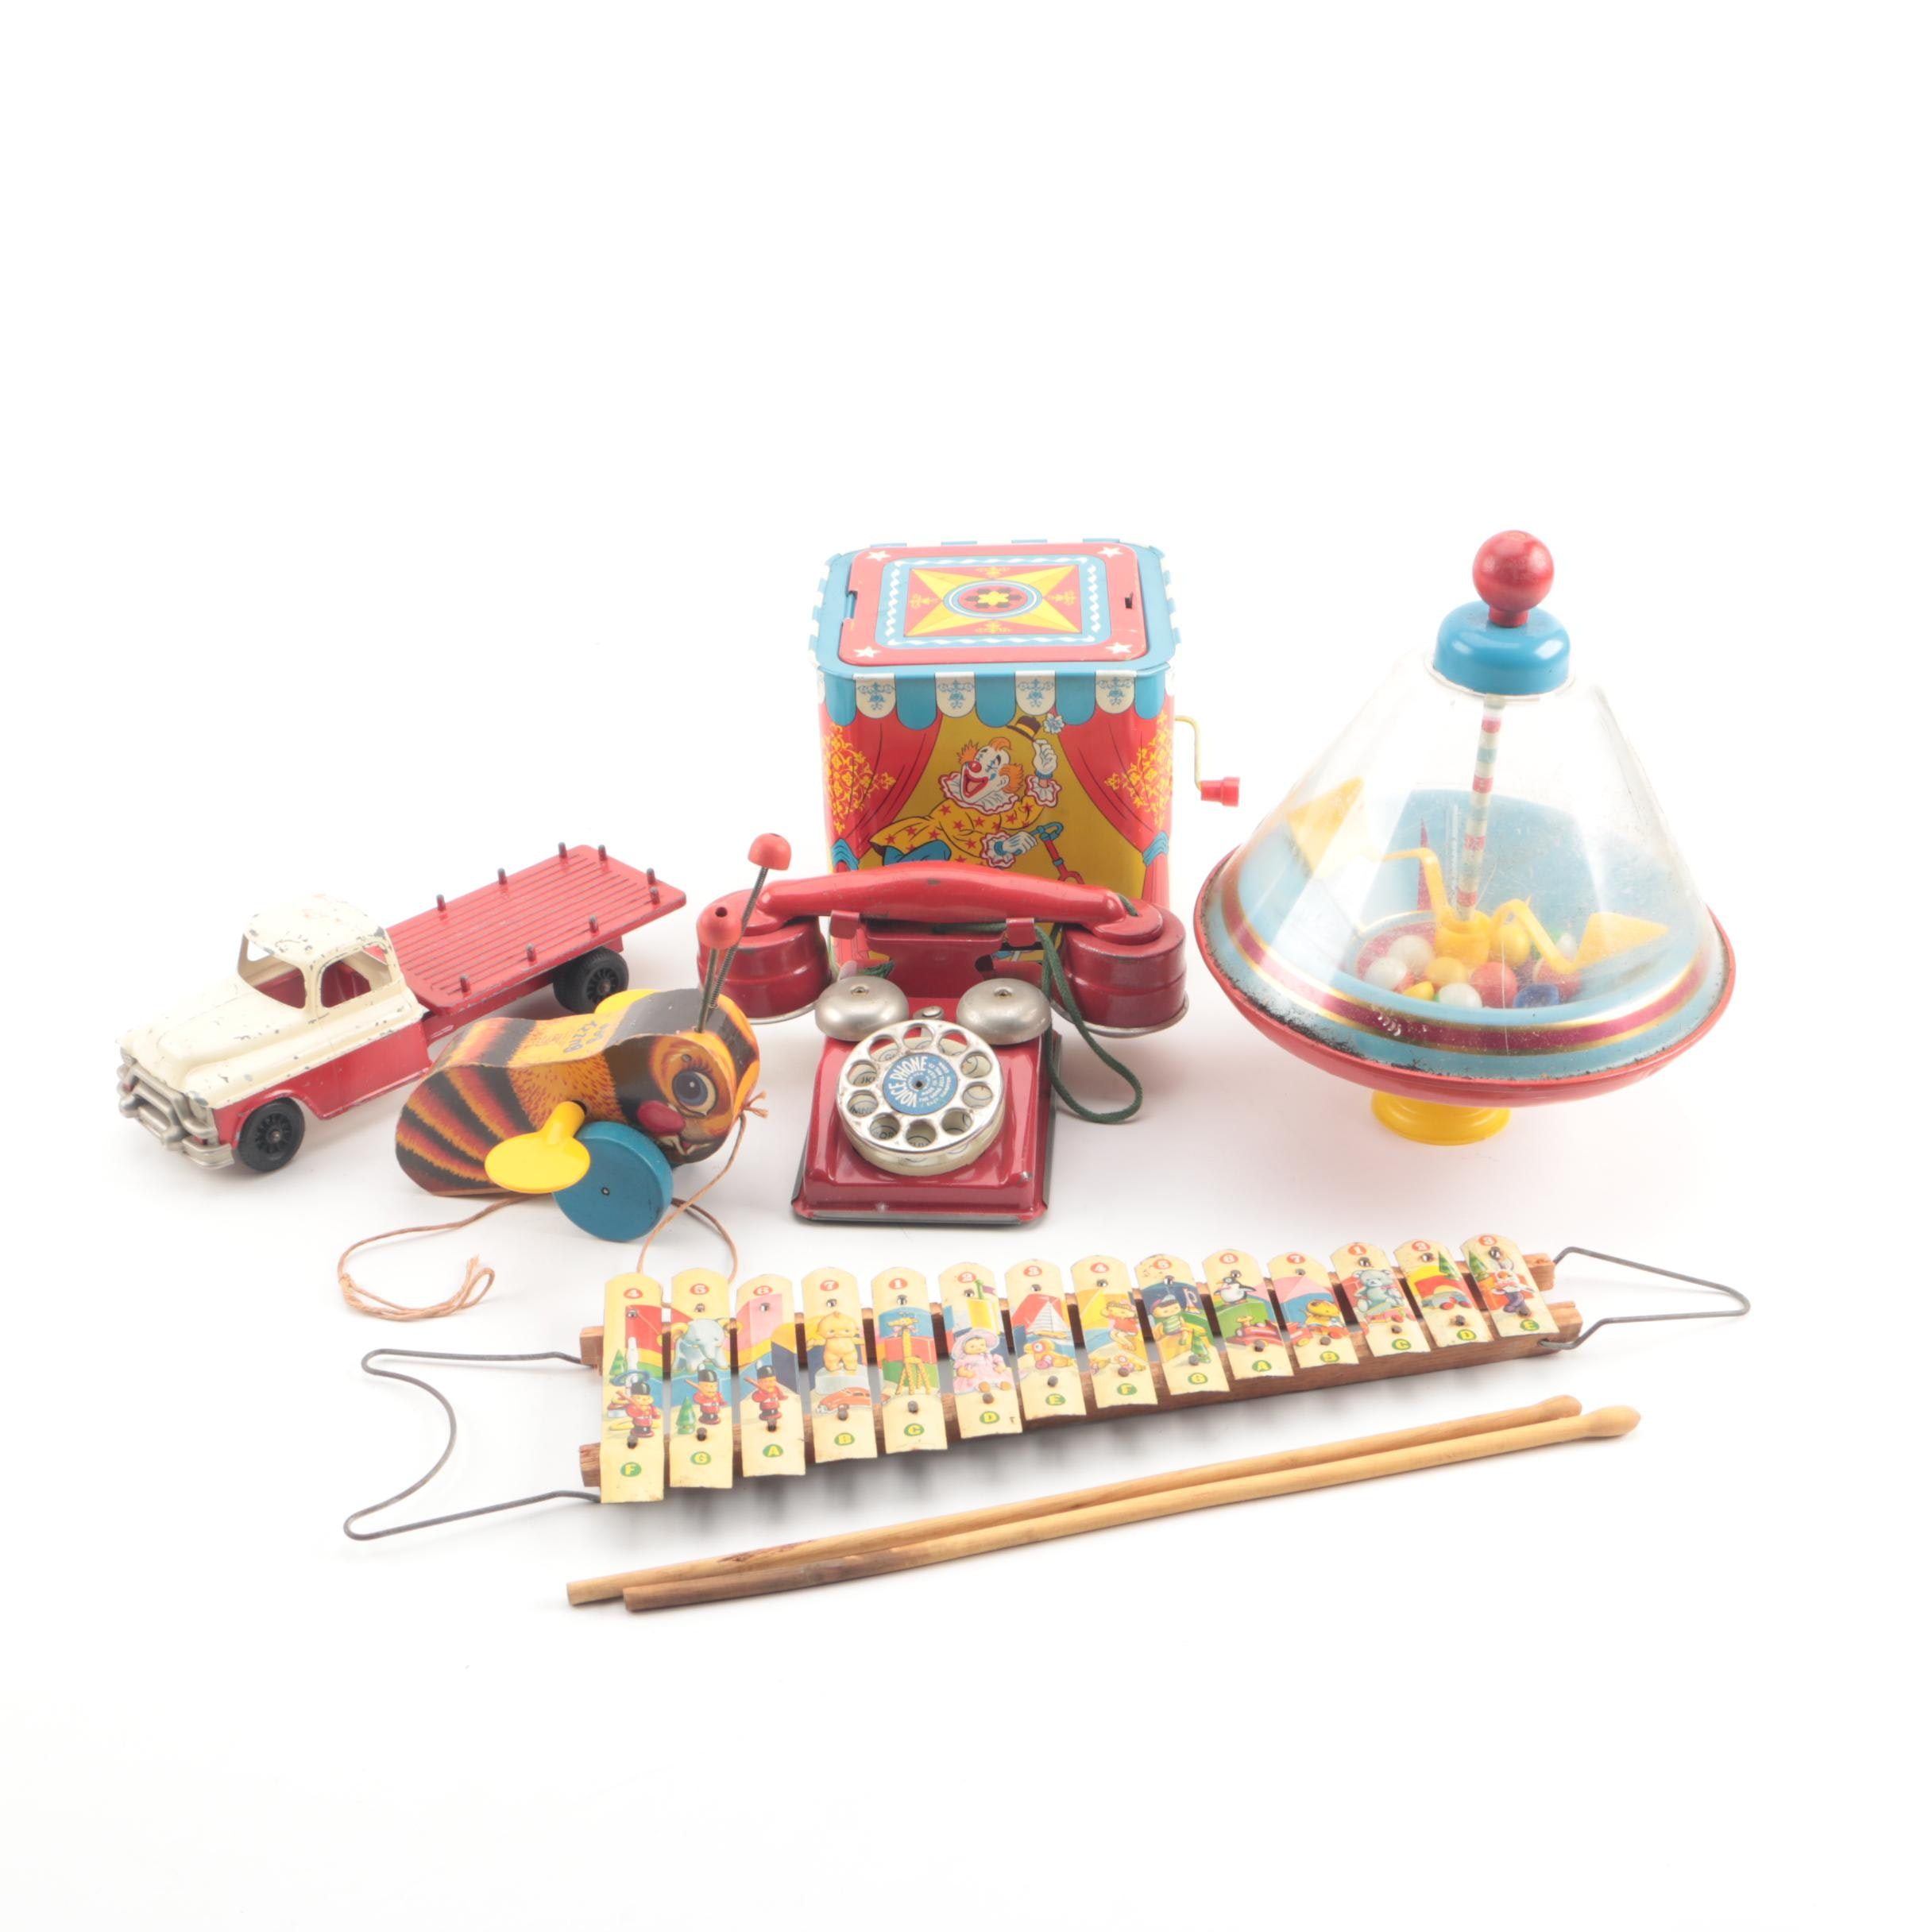 Vintage Toys Including Hubley and Fisher Price